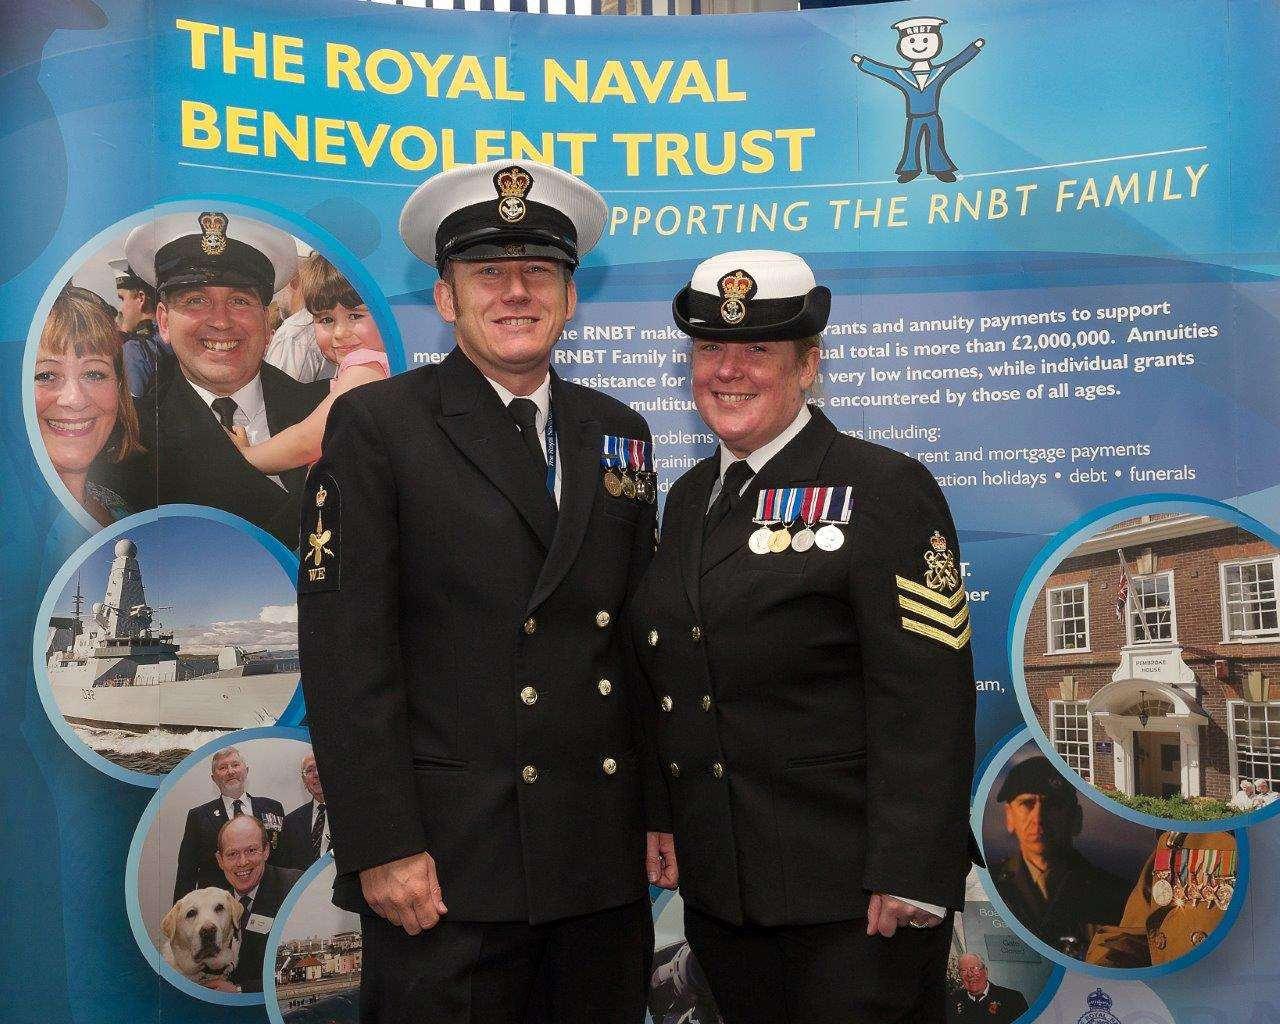 The Royal Naval Benevolent Trust